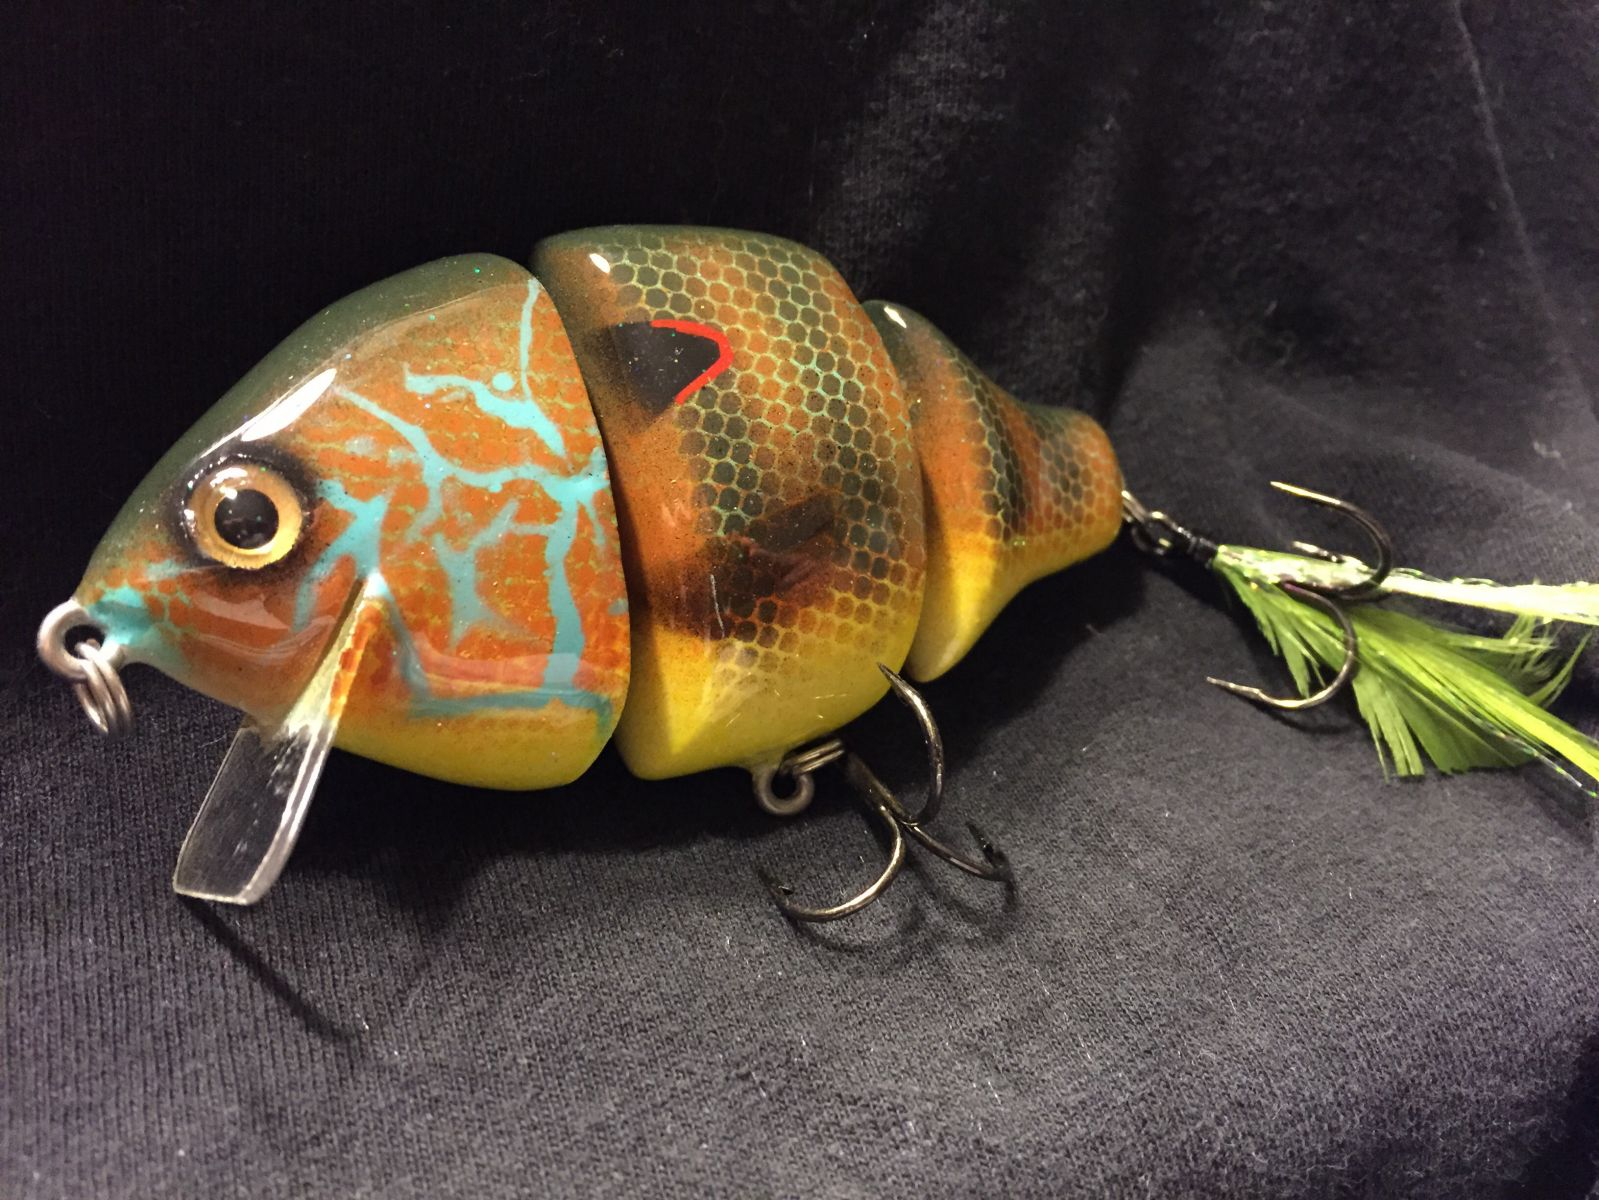 Stash Baits F247 swimbait